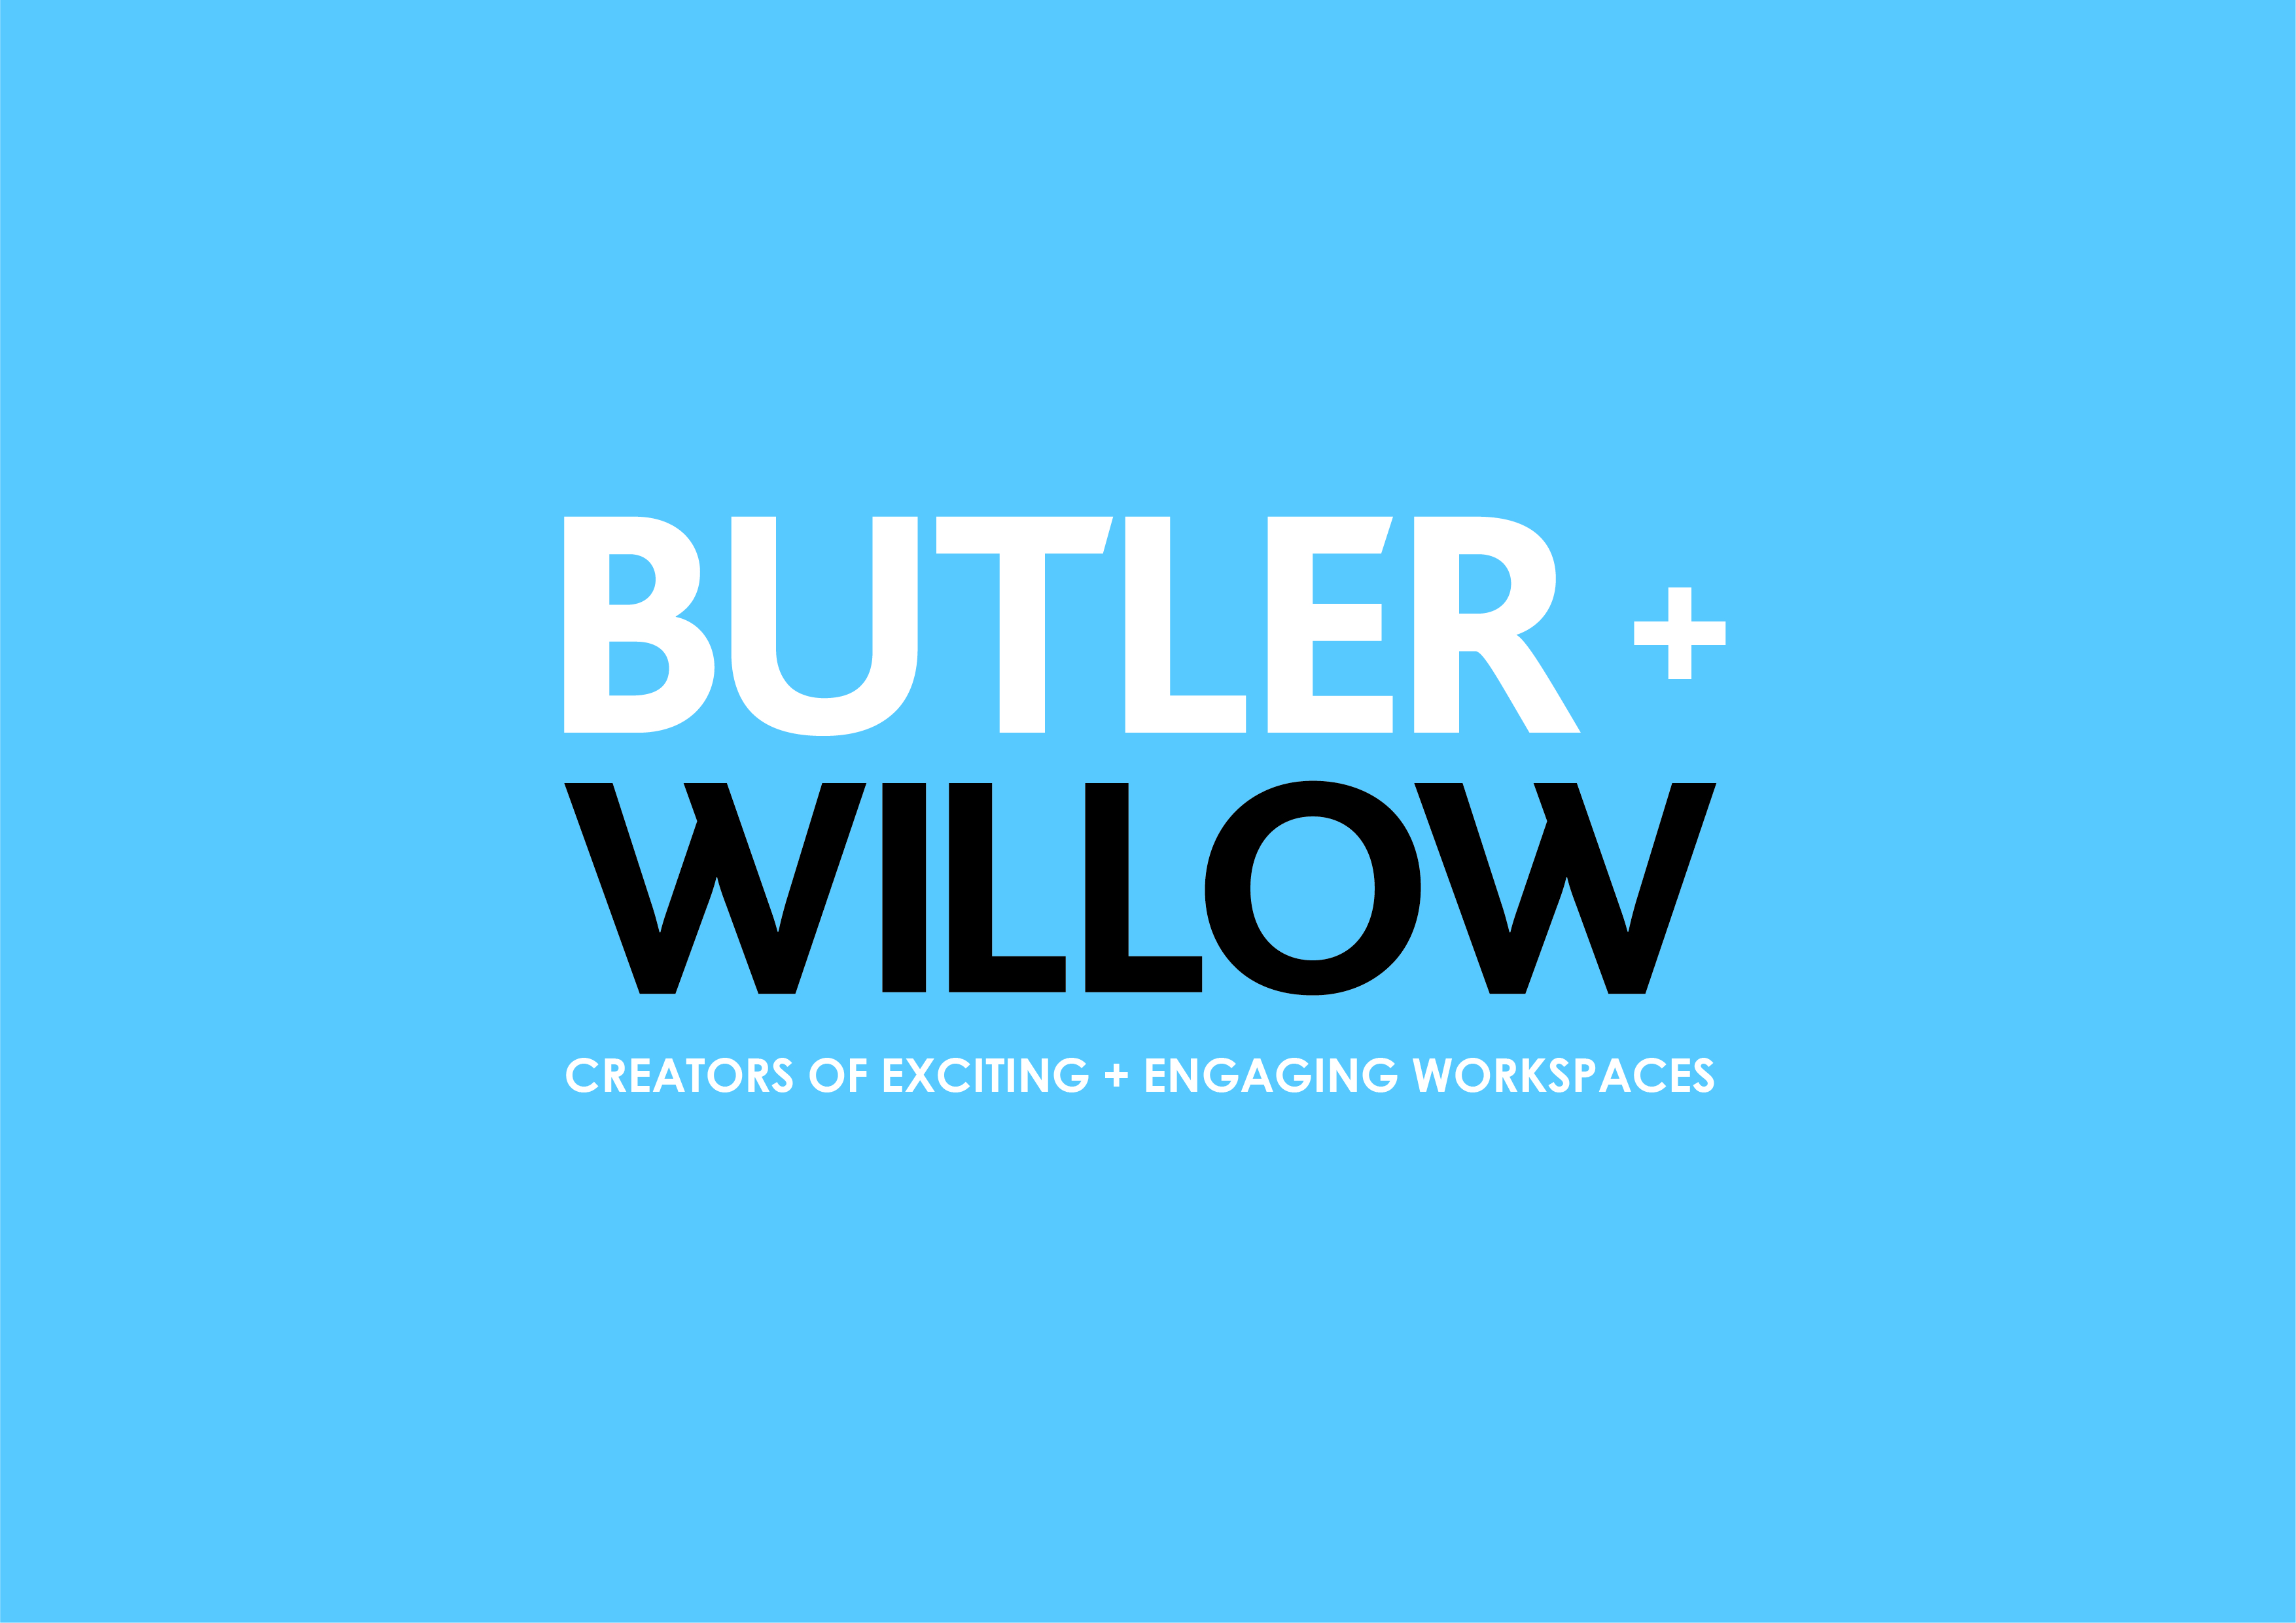 Butler + Willow